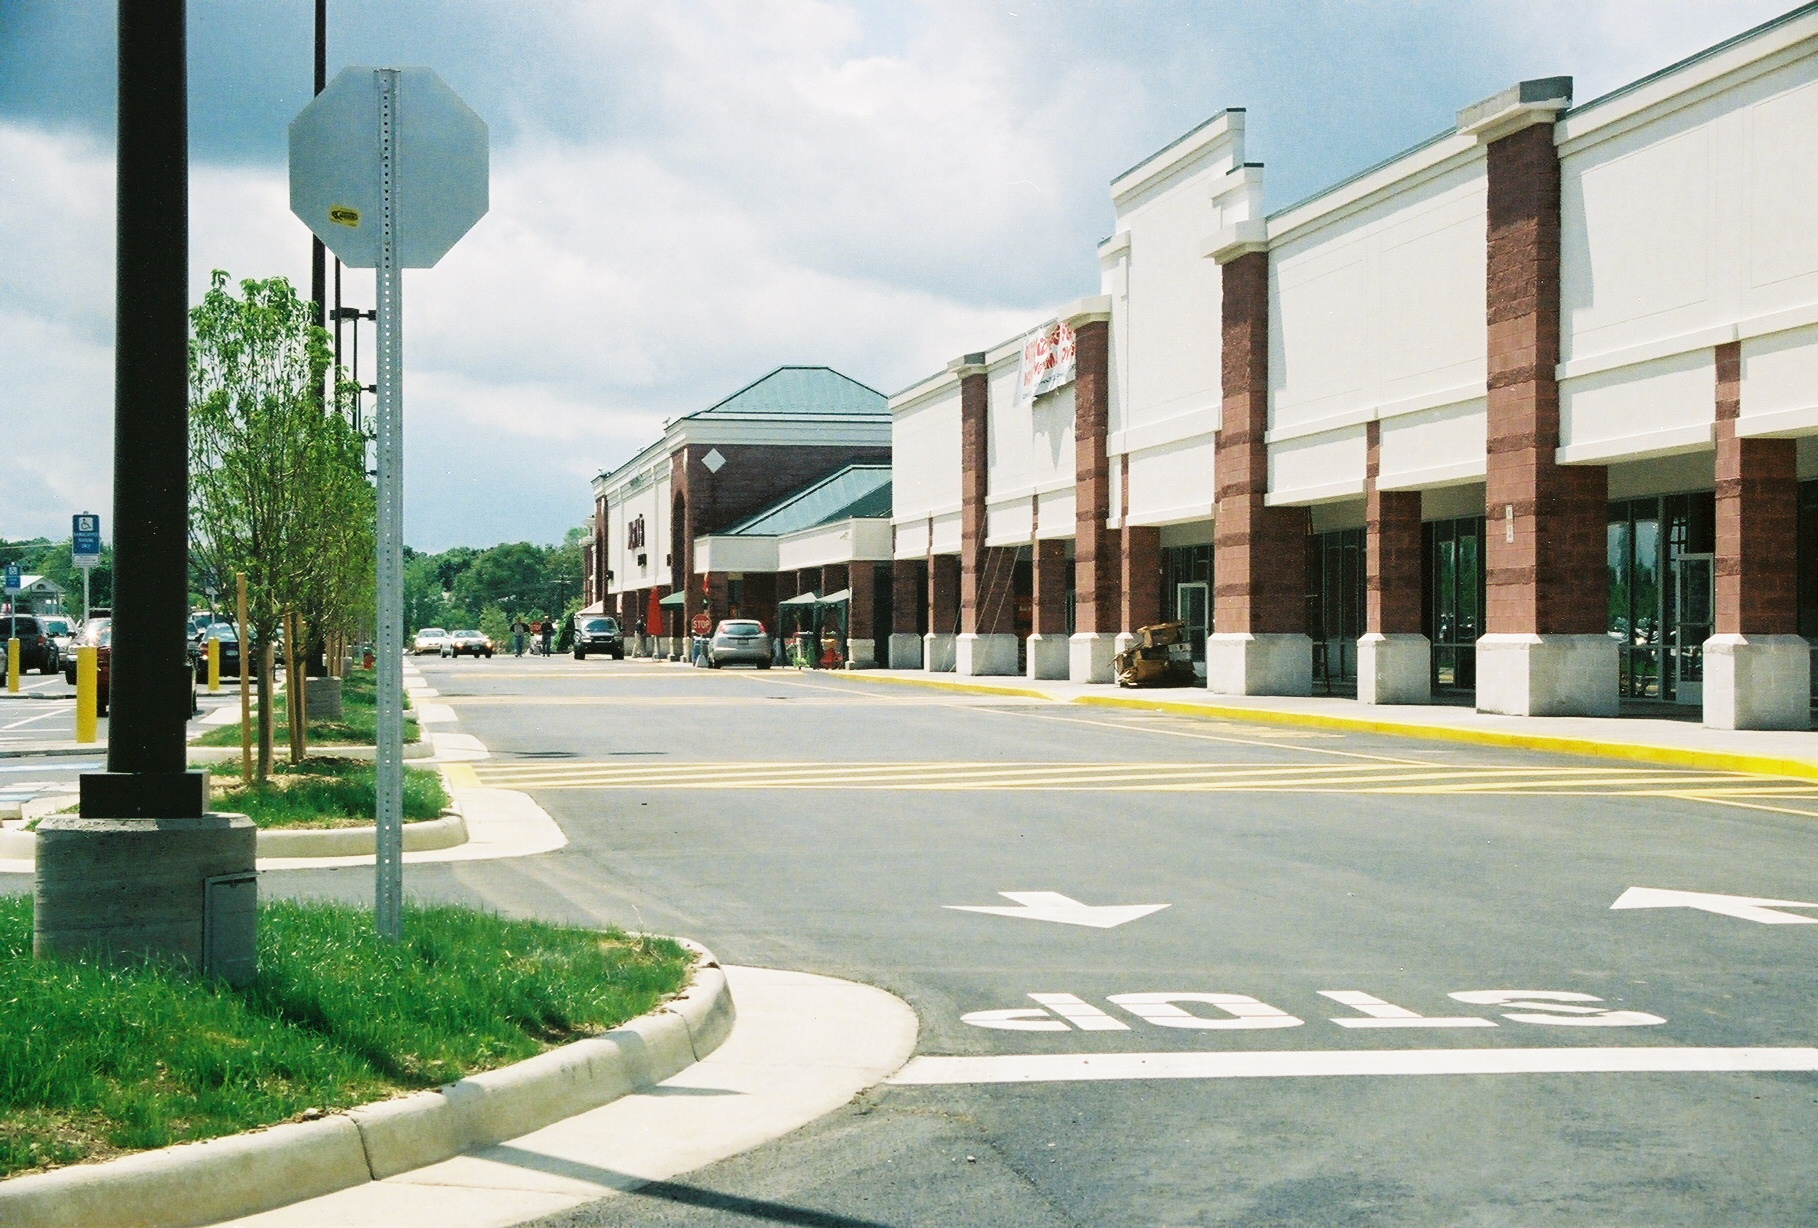 Martins Shopping Center, Rt. 7